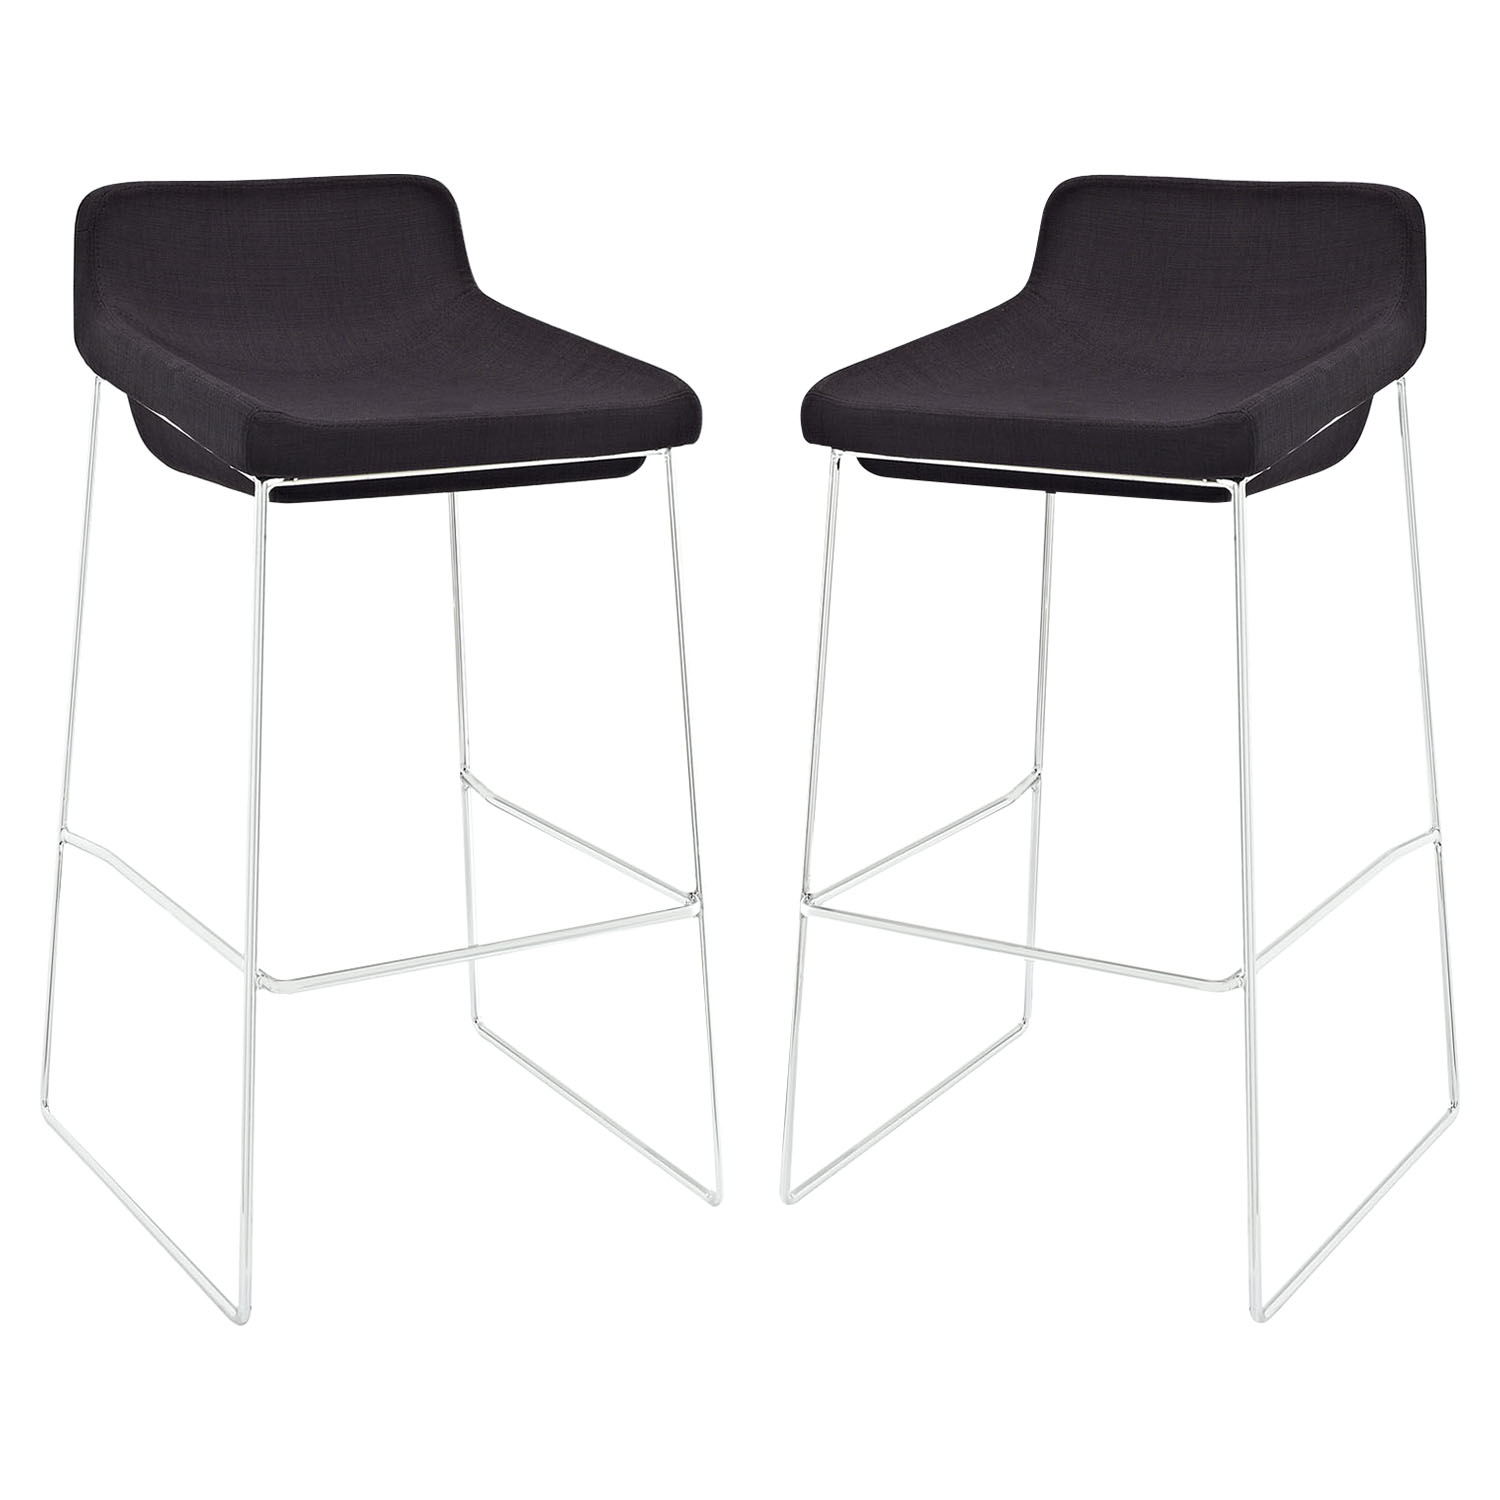 Garner Bar Stool - Backless, Black (Set of 2)